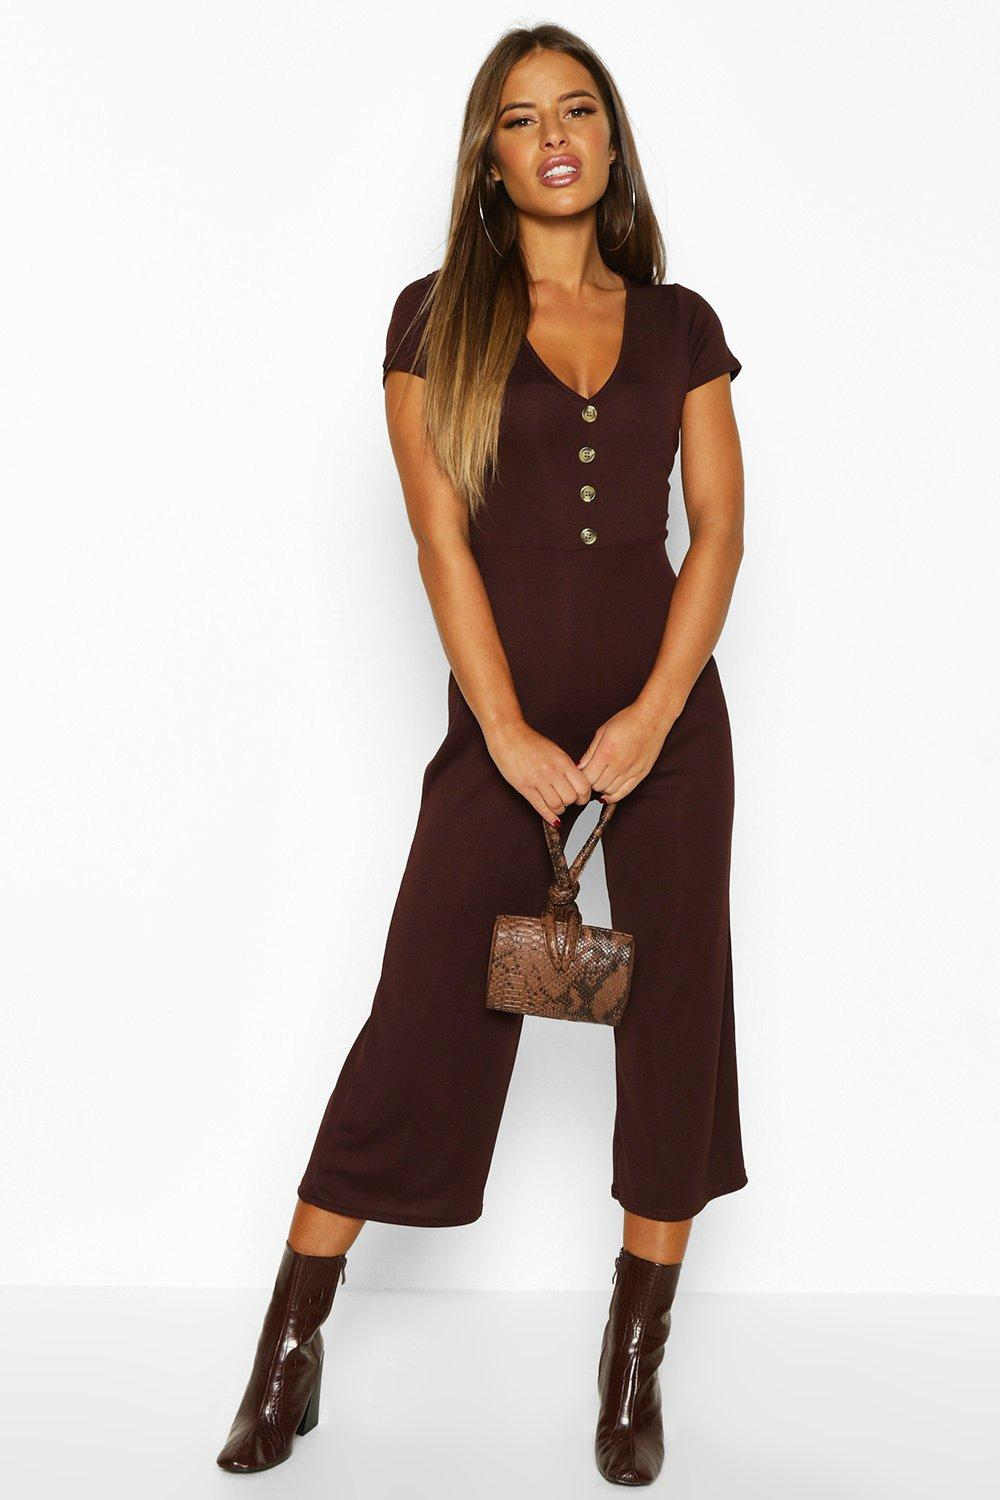 boohoo Womens Petite Rib Mock Horn Button Culotte Jumpsuit - Brown - 12, Brown